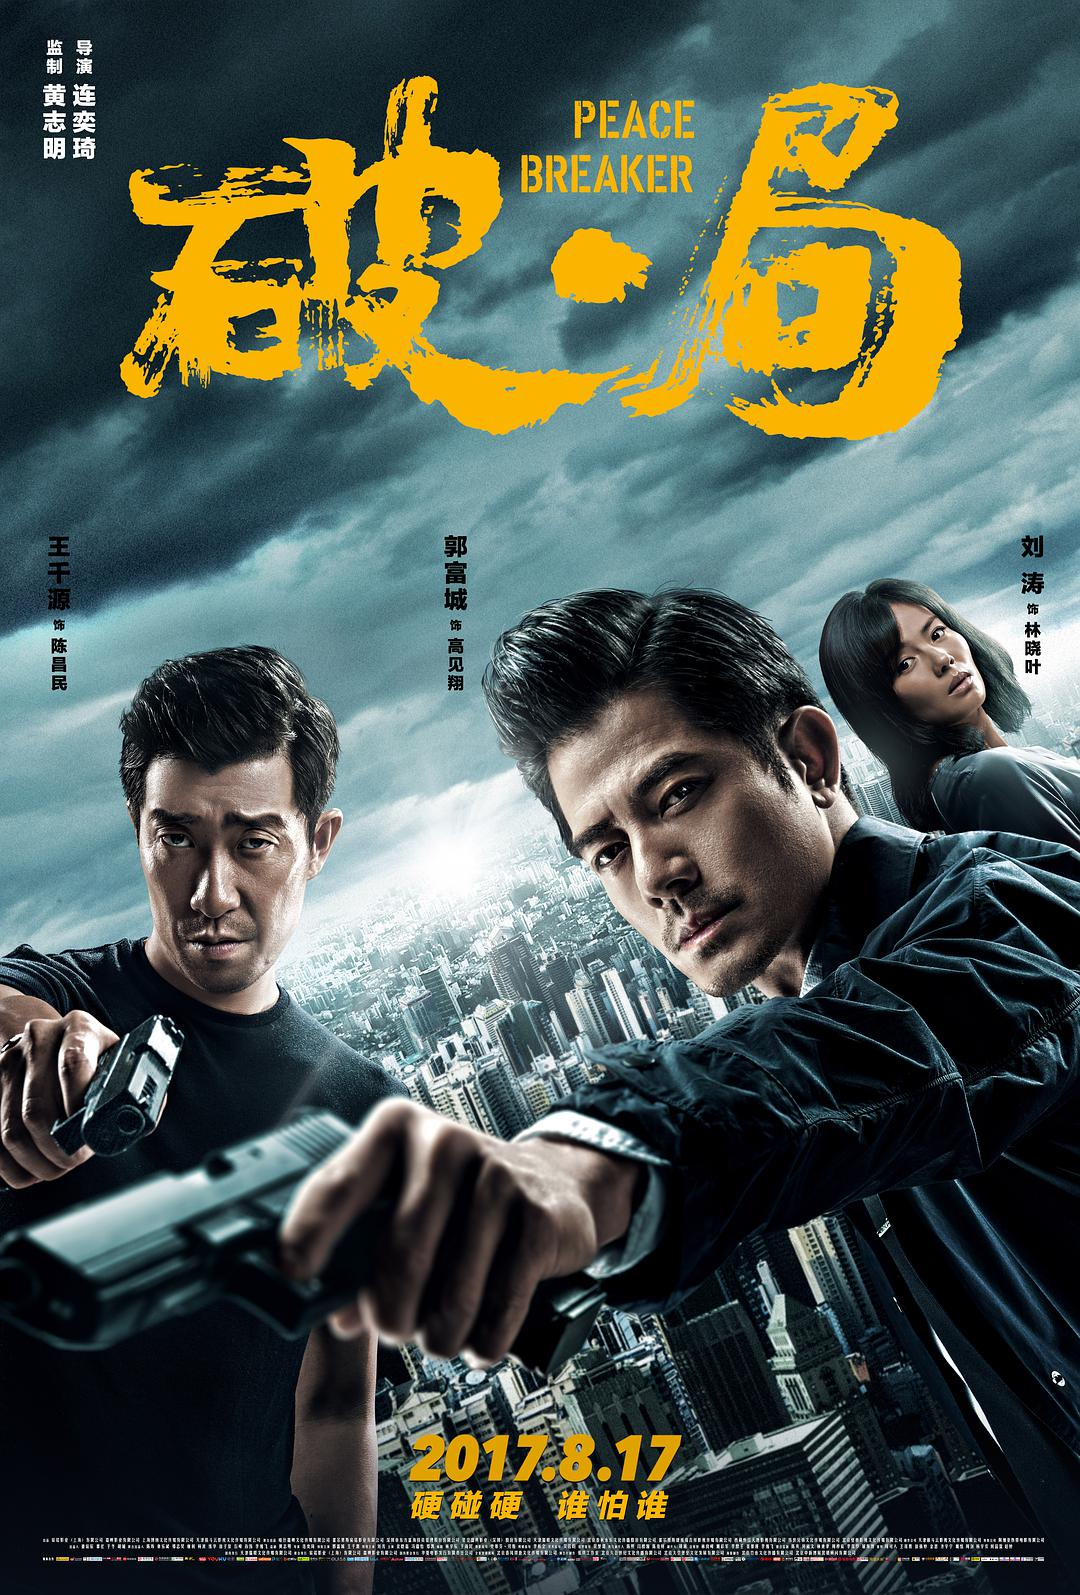 Peace Is Hard >> Review: Peace Breaker (2017) | Sino-Cinema 《神州电影》